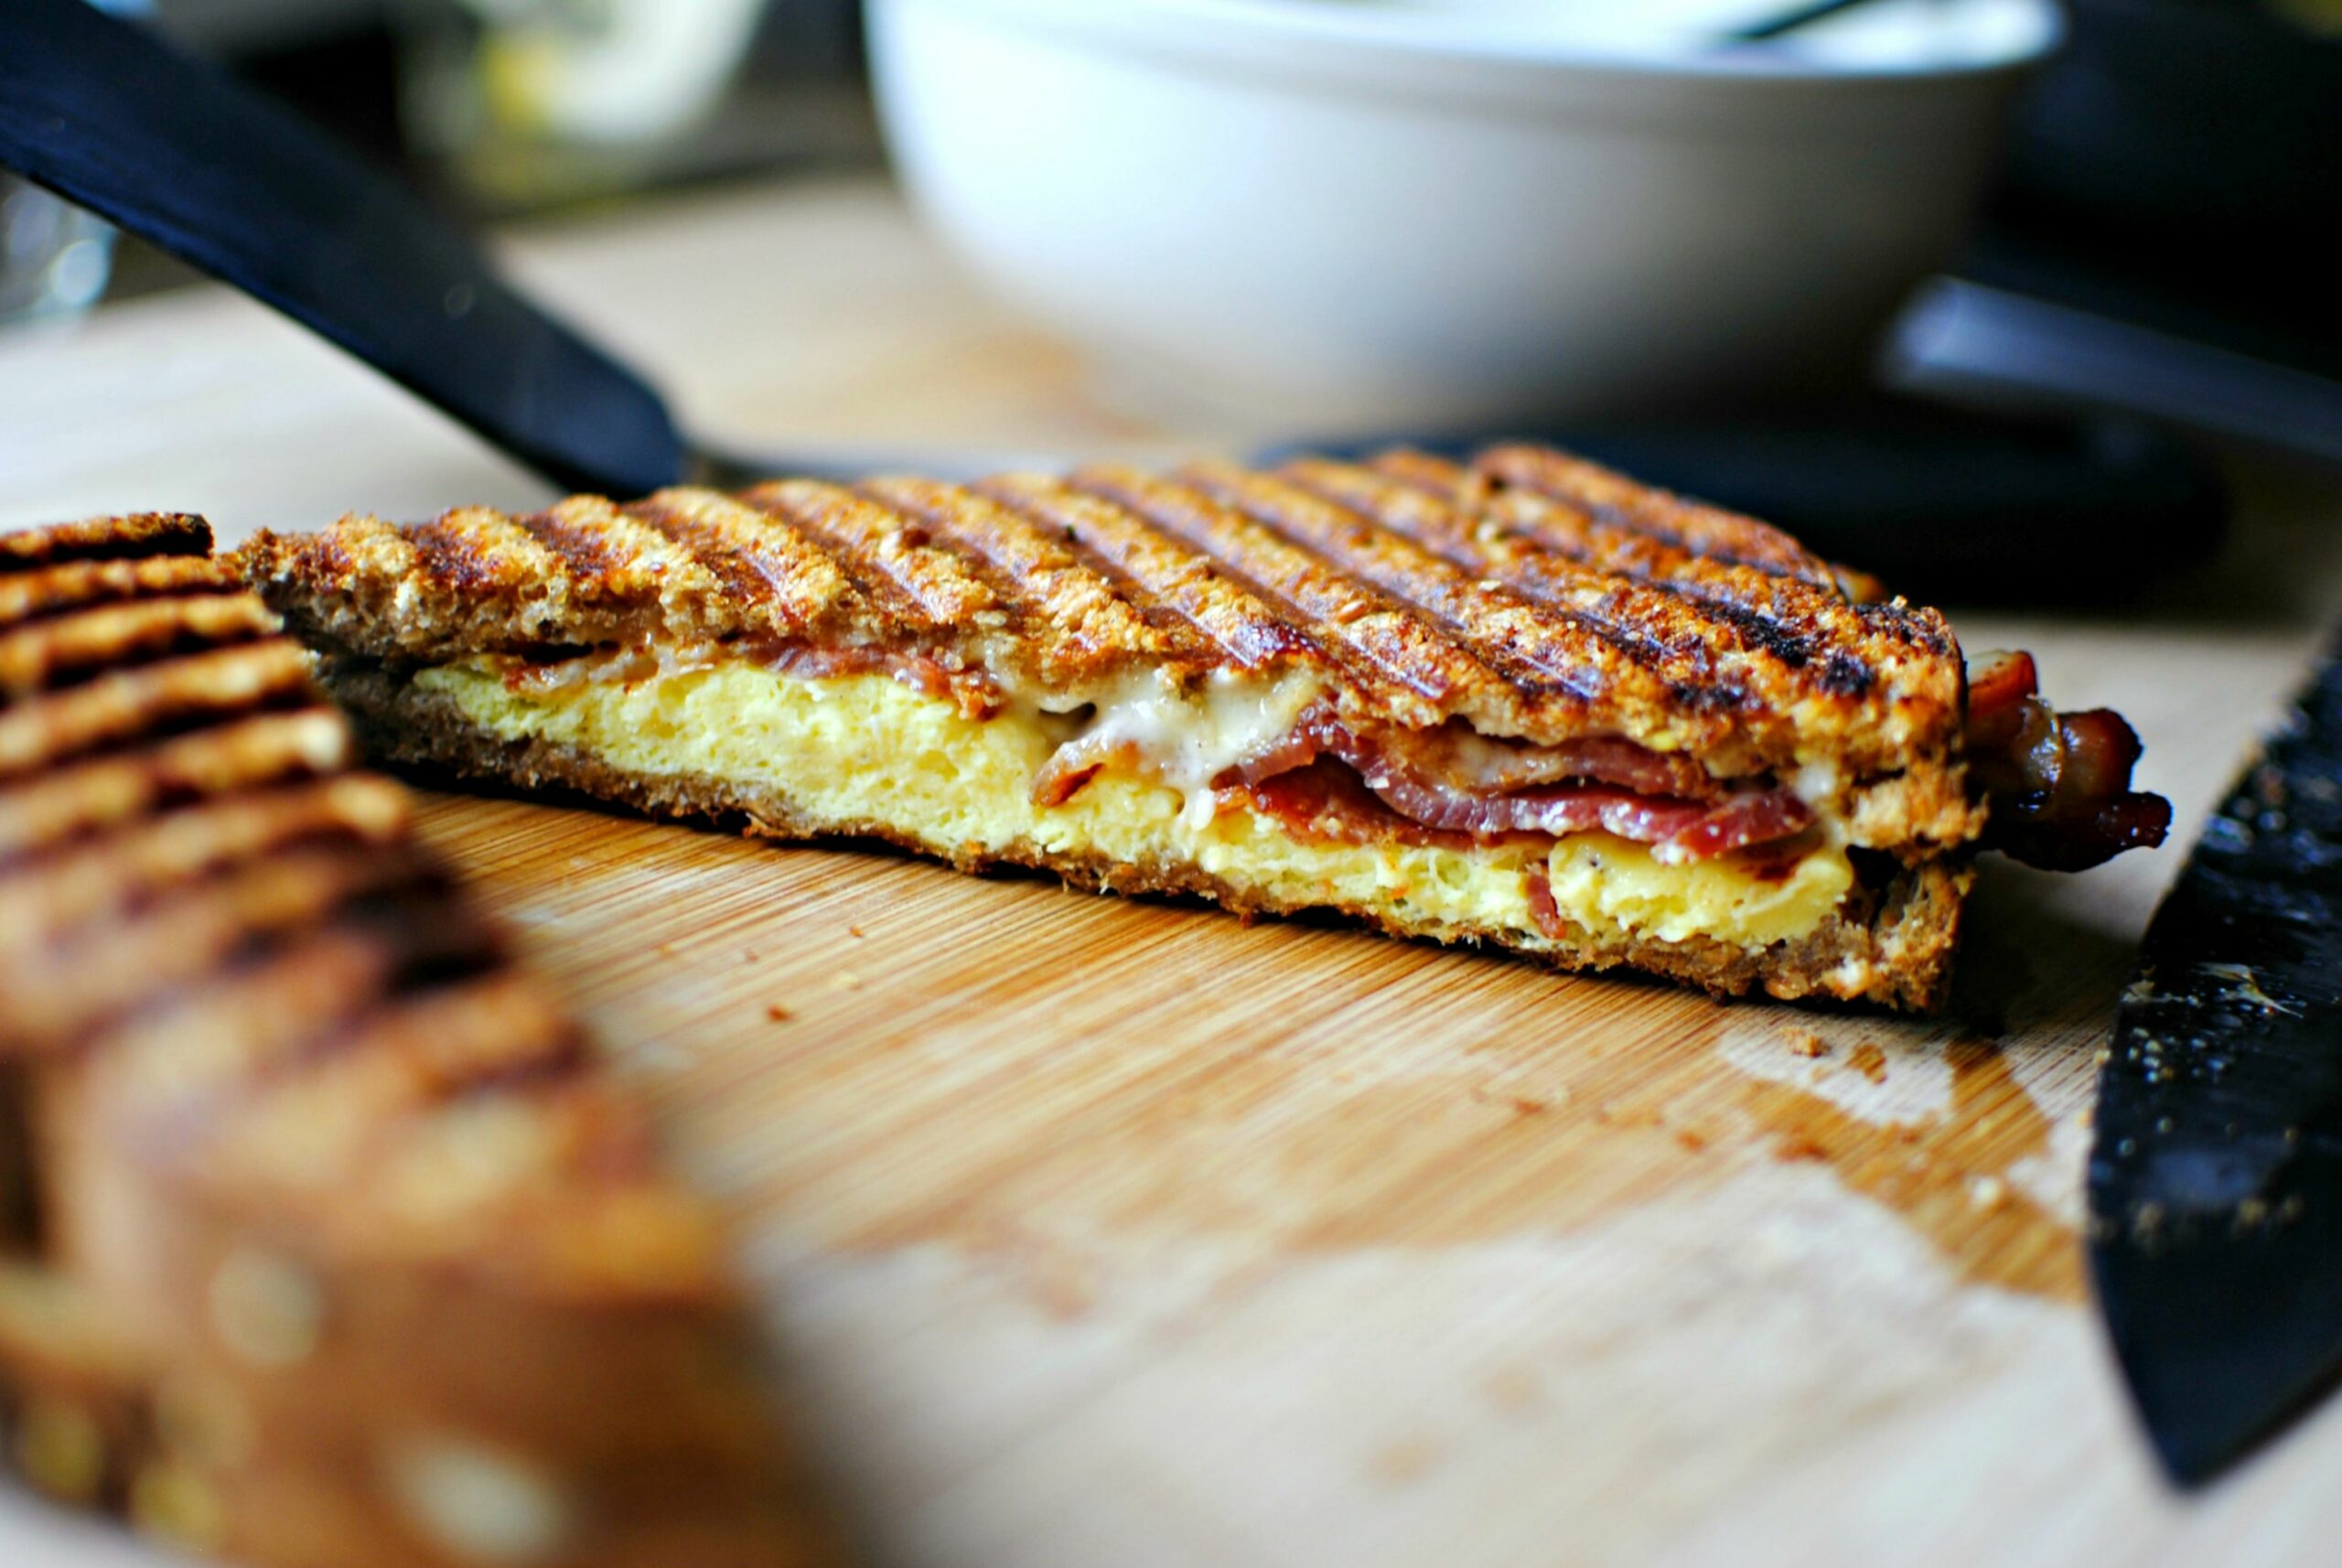 Breakfast Panini - Simply Scratch - Recipes Sandwich Press